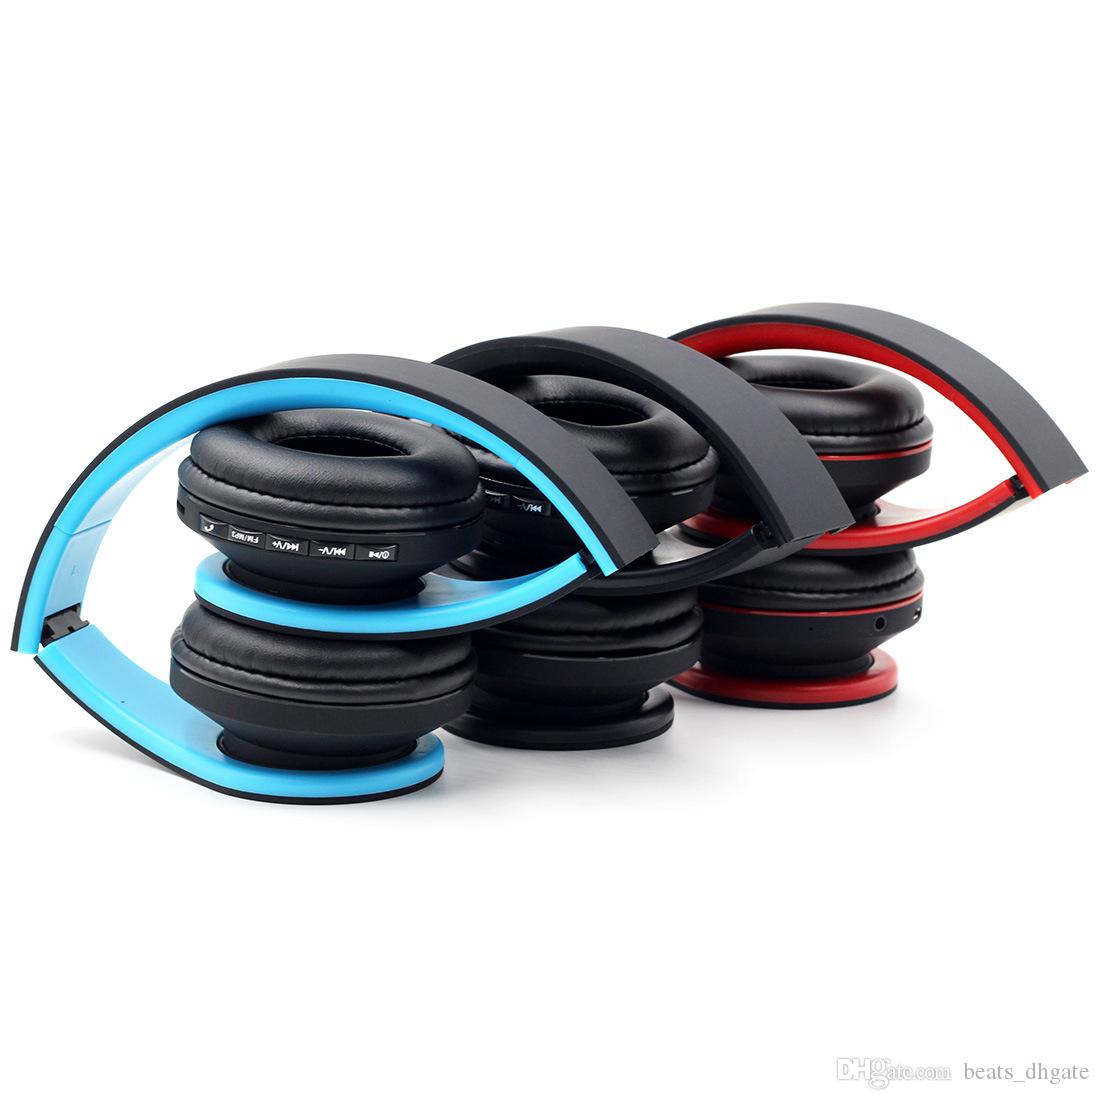 Headphone S450 Bluetooth Headset Manufacturer Direct Selling Radio And Audio Mobile Computer Outdoor Cycling Sports High Quality